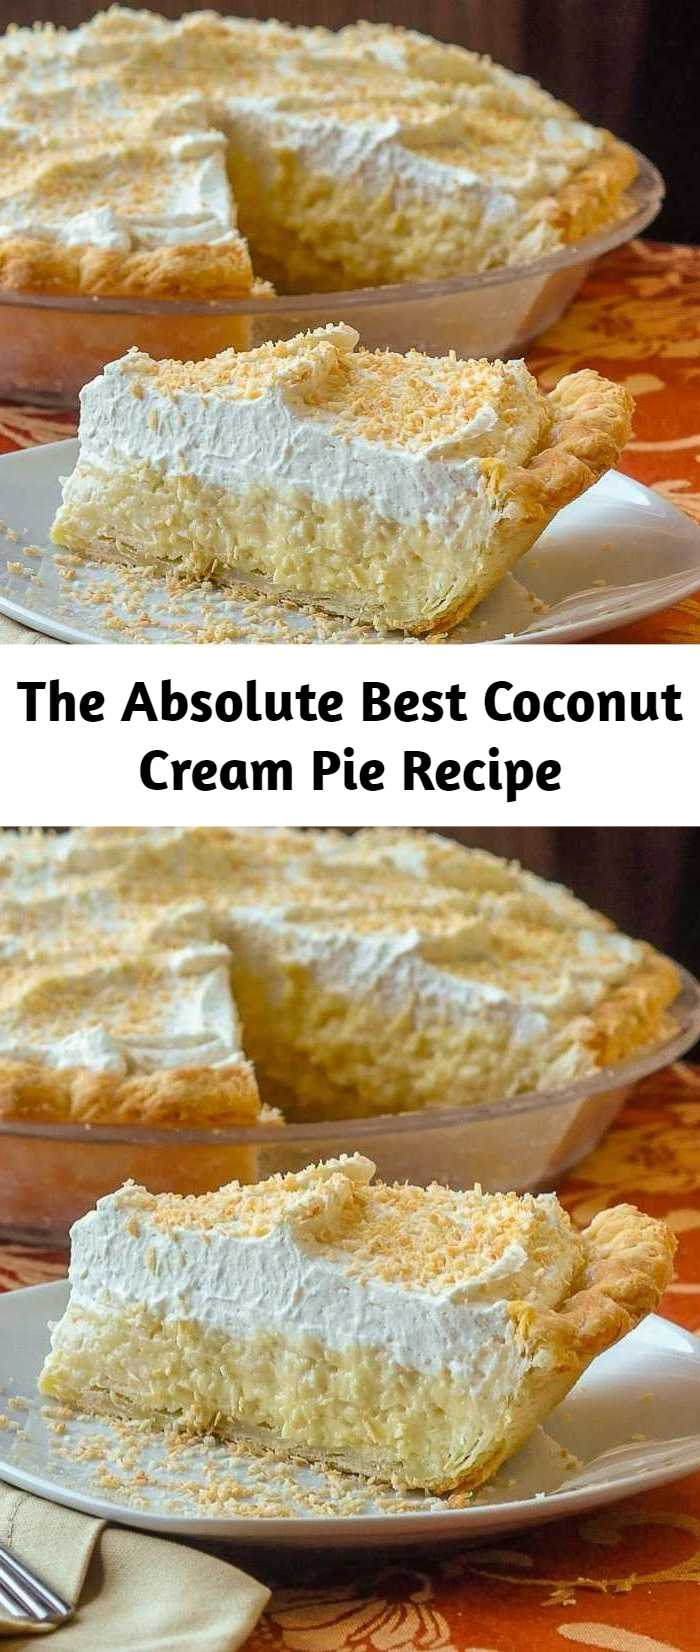 The Absolute Best Coconut Cream Pie Recipe - Truly the absolute best coconut cream pie. A creamy, old-fashioned coconut cream pie recipe. After decades of tasting many different pie recipes I have never had better than this luscious creamy pie… not even close.